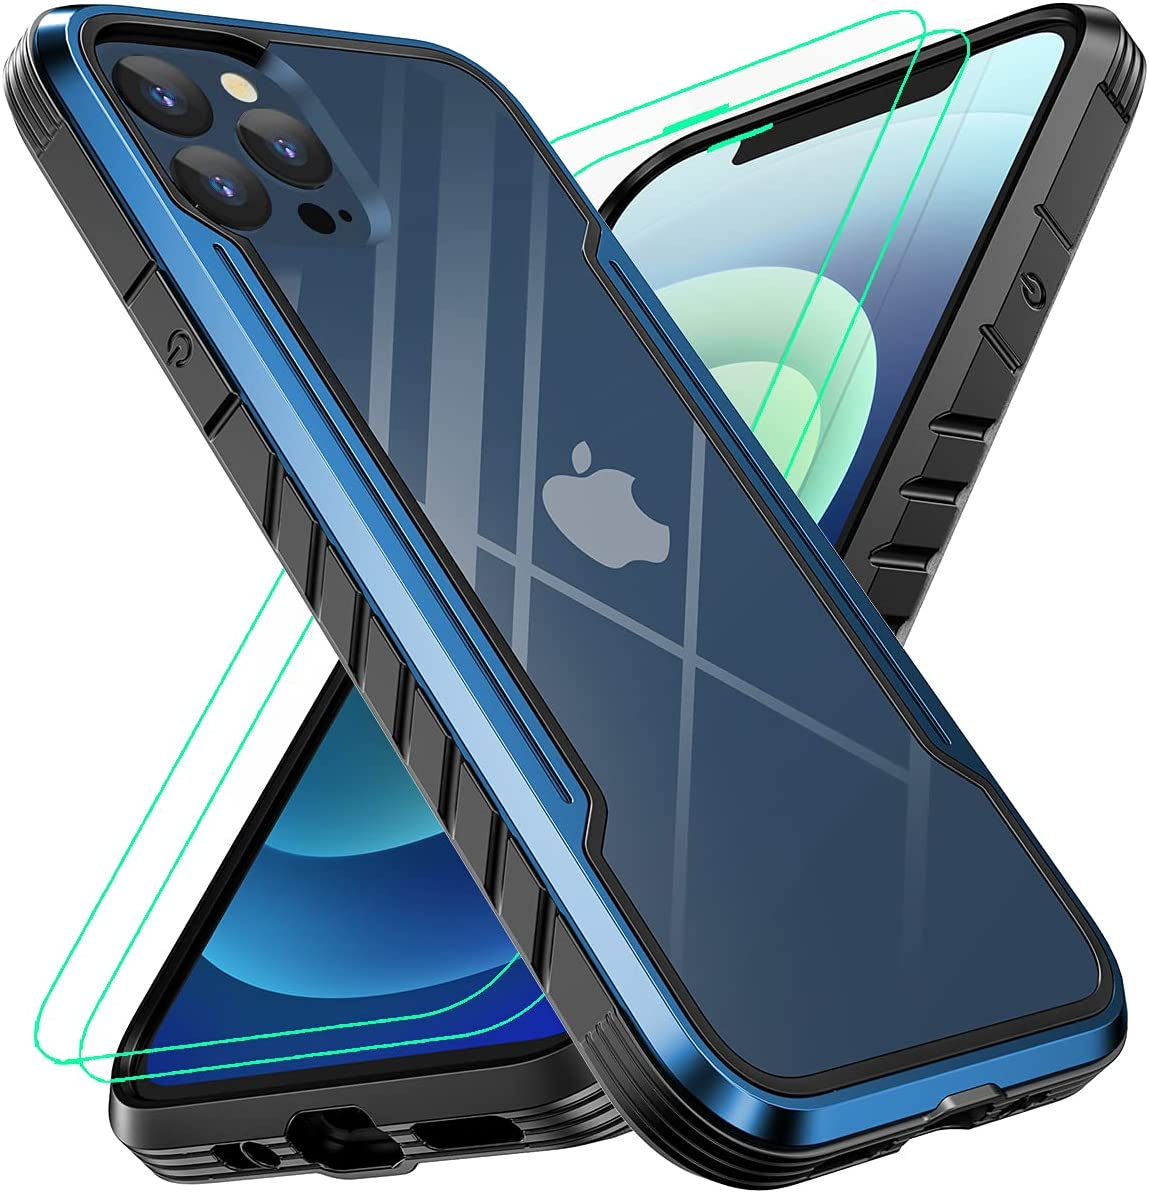 Sicher Designed for iPhone 12 Pro Max Case 6.7 Inch, Military Protective, Shockproof, with [2 x Tempered Glass Screen Protector], 6.6Ft Drop Tested, Aluminum Frame, Blue